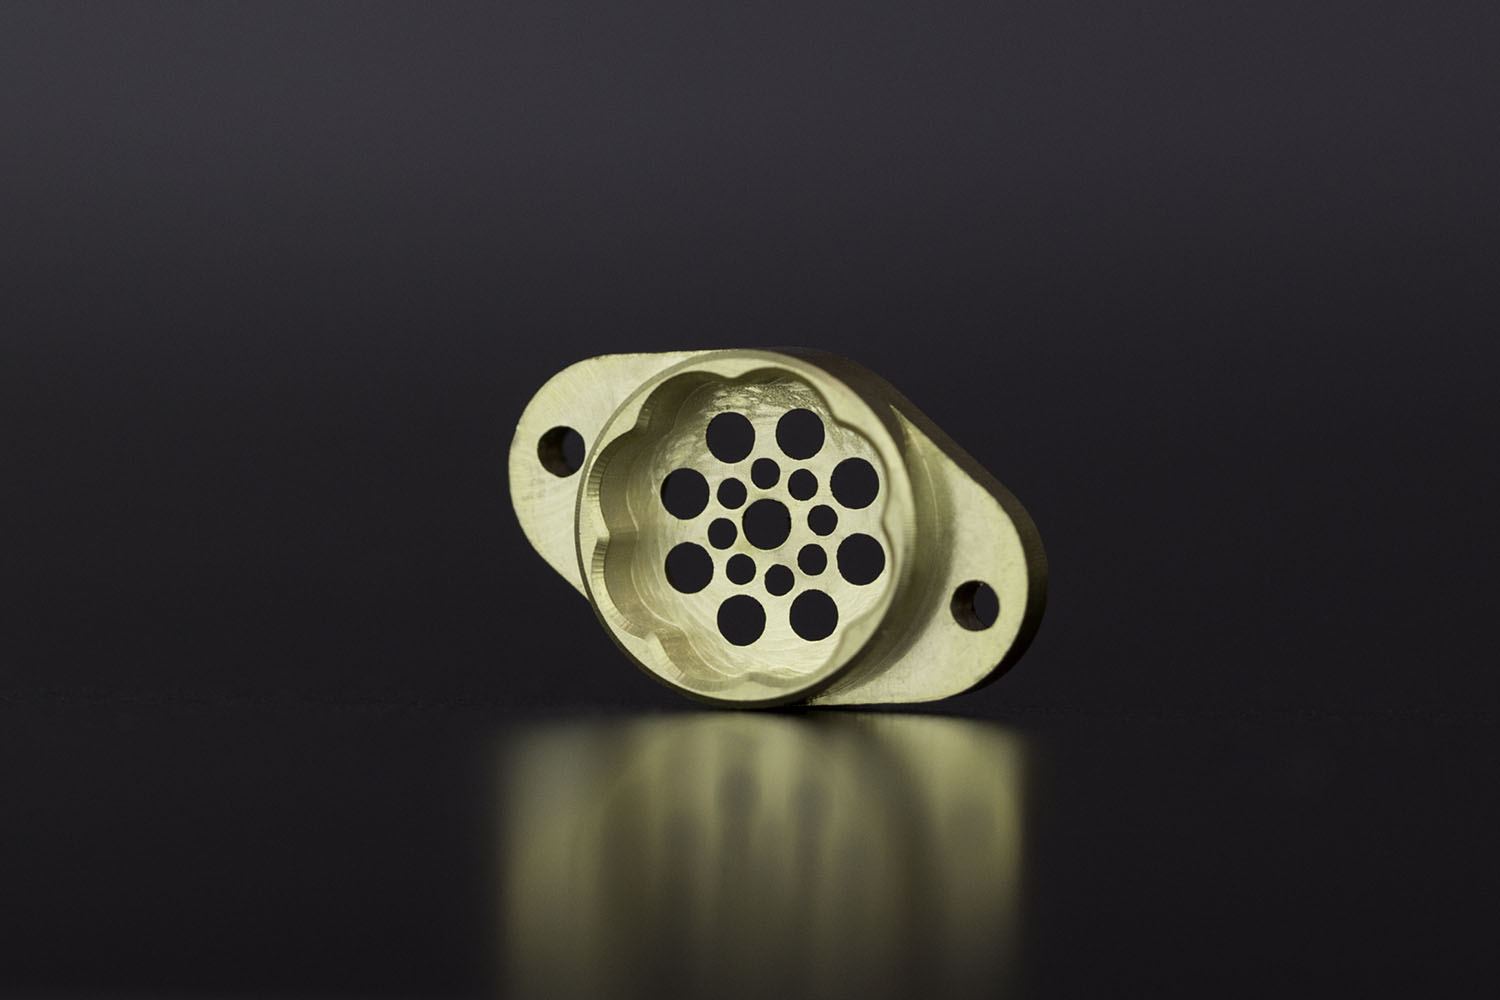 360 brass cnc machining material